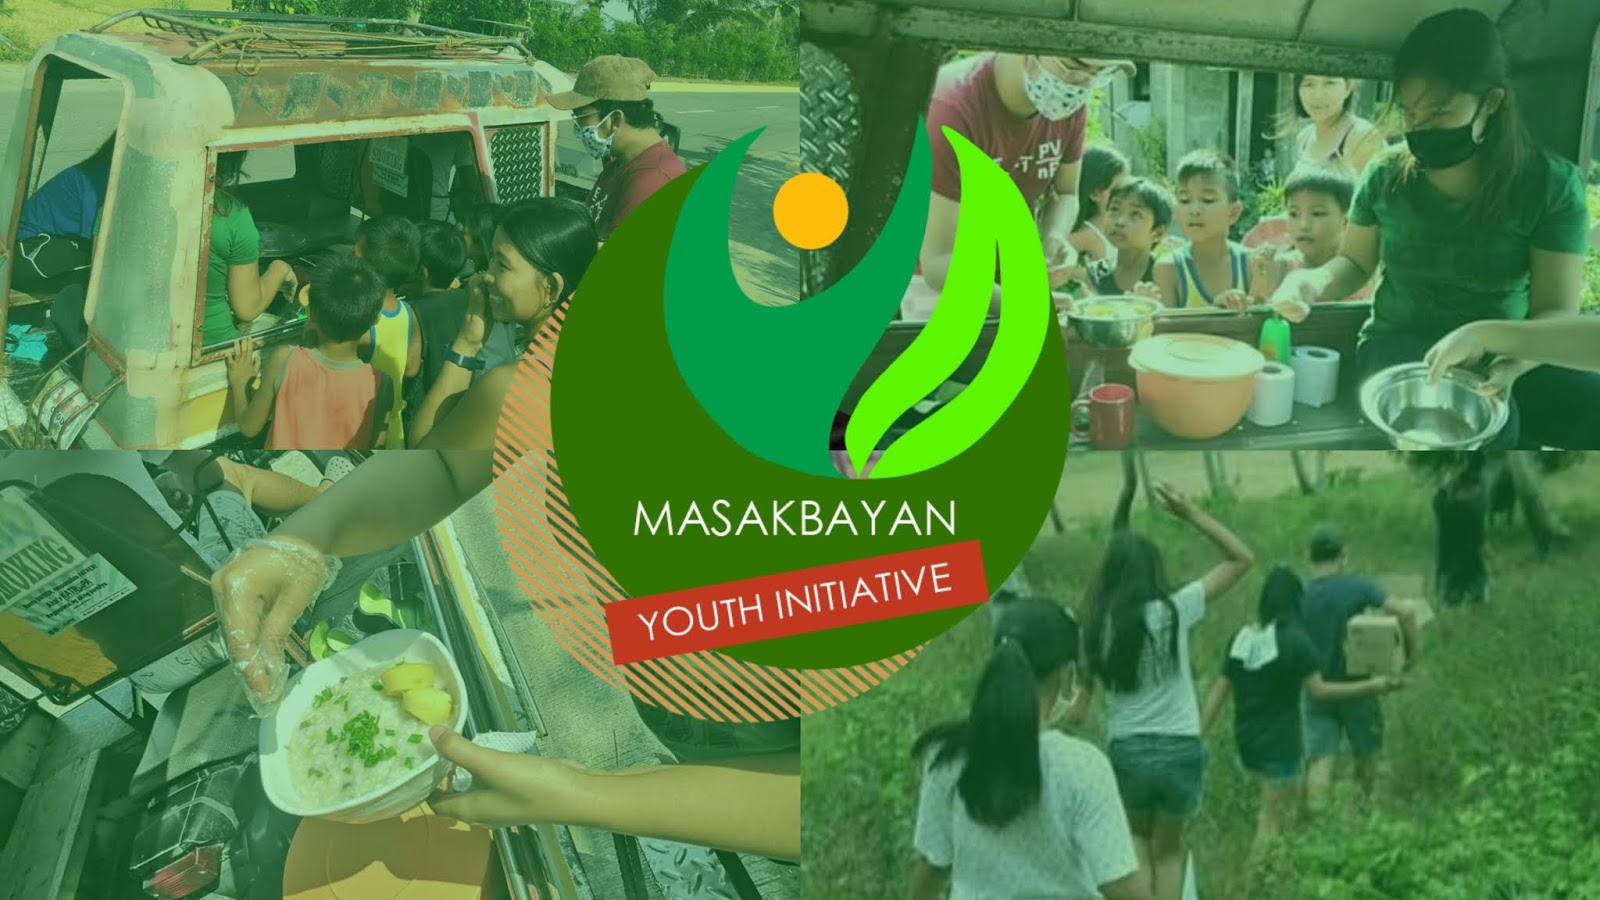 Masakbayan Youth Initiative - Metroscene Mag